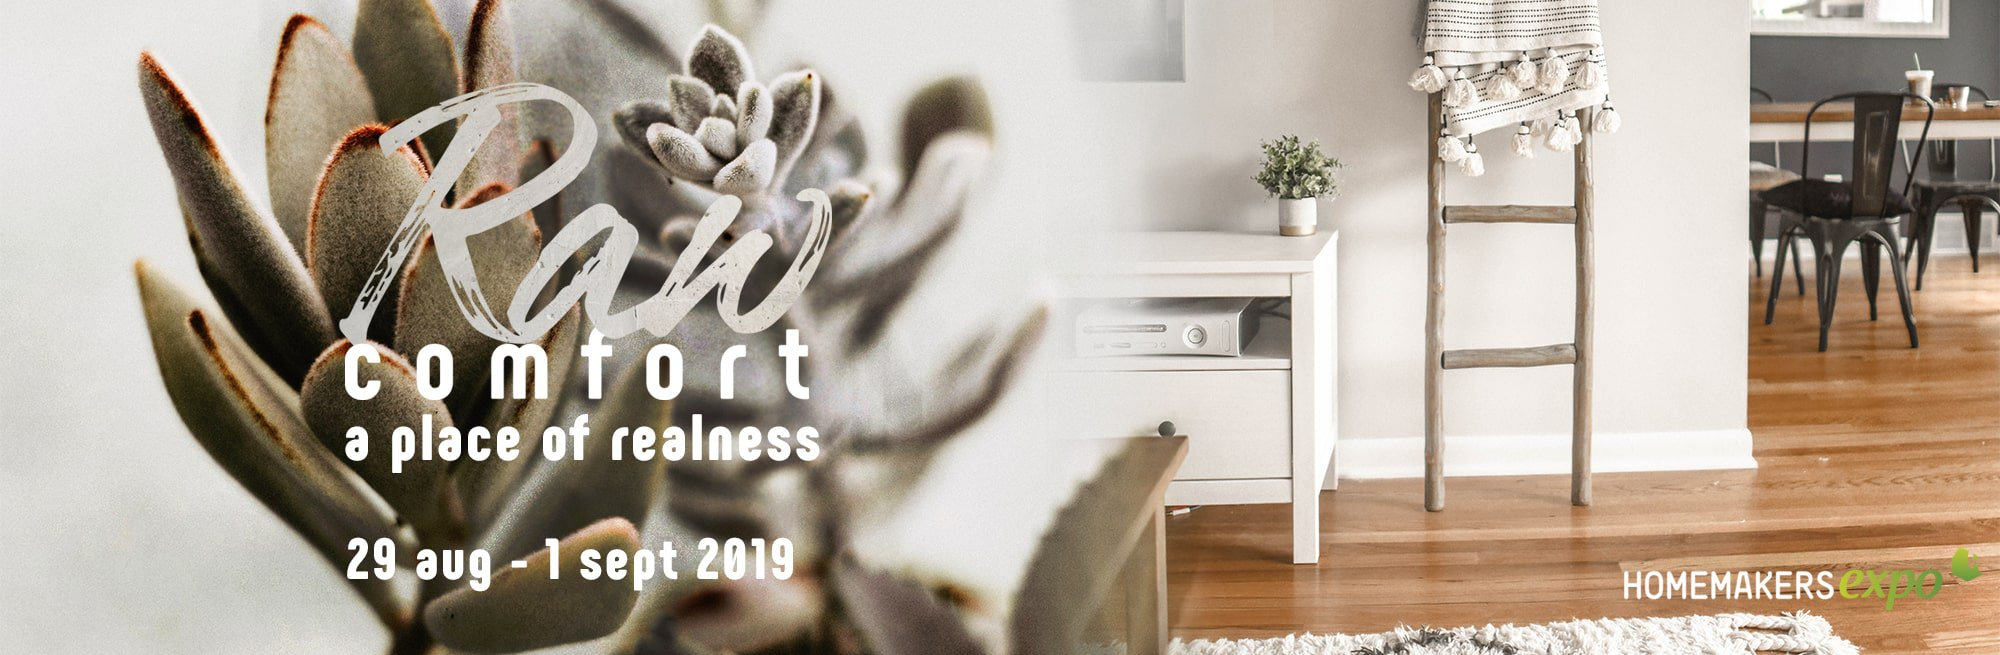 Cape Town HOMEMAKERS Expo 2019